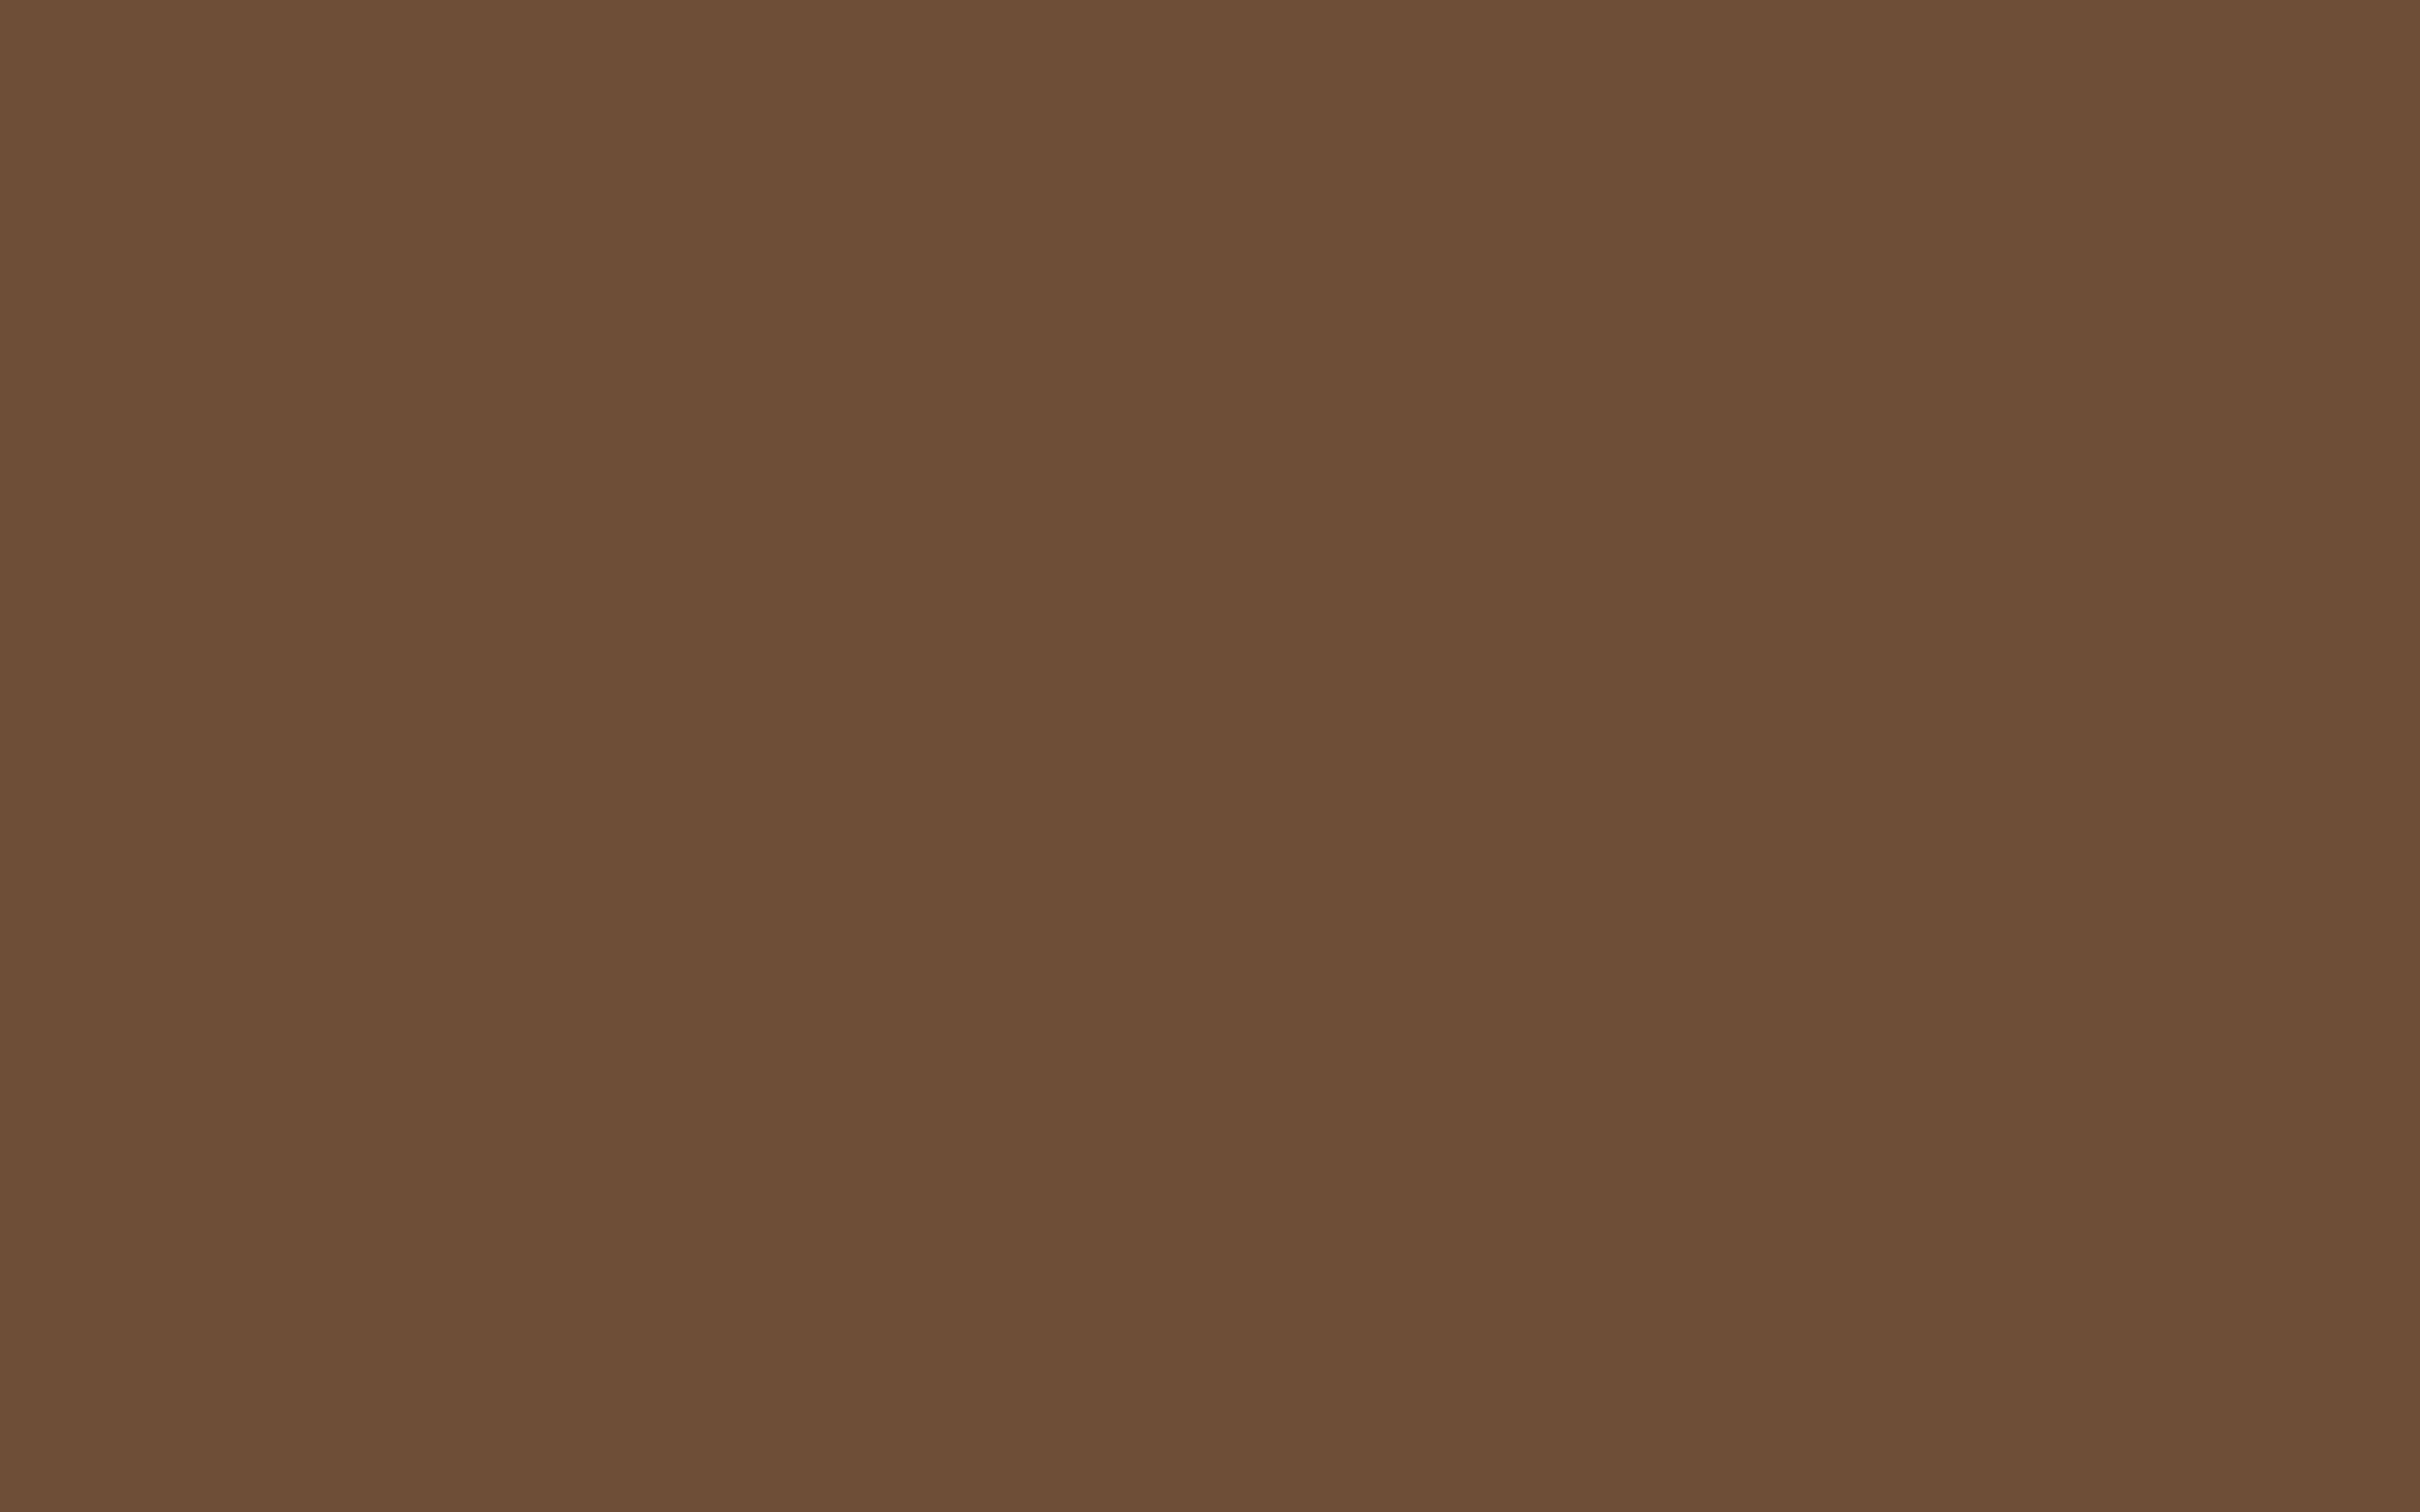 2880x1800 Tuscan Brown Solid Color Background